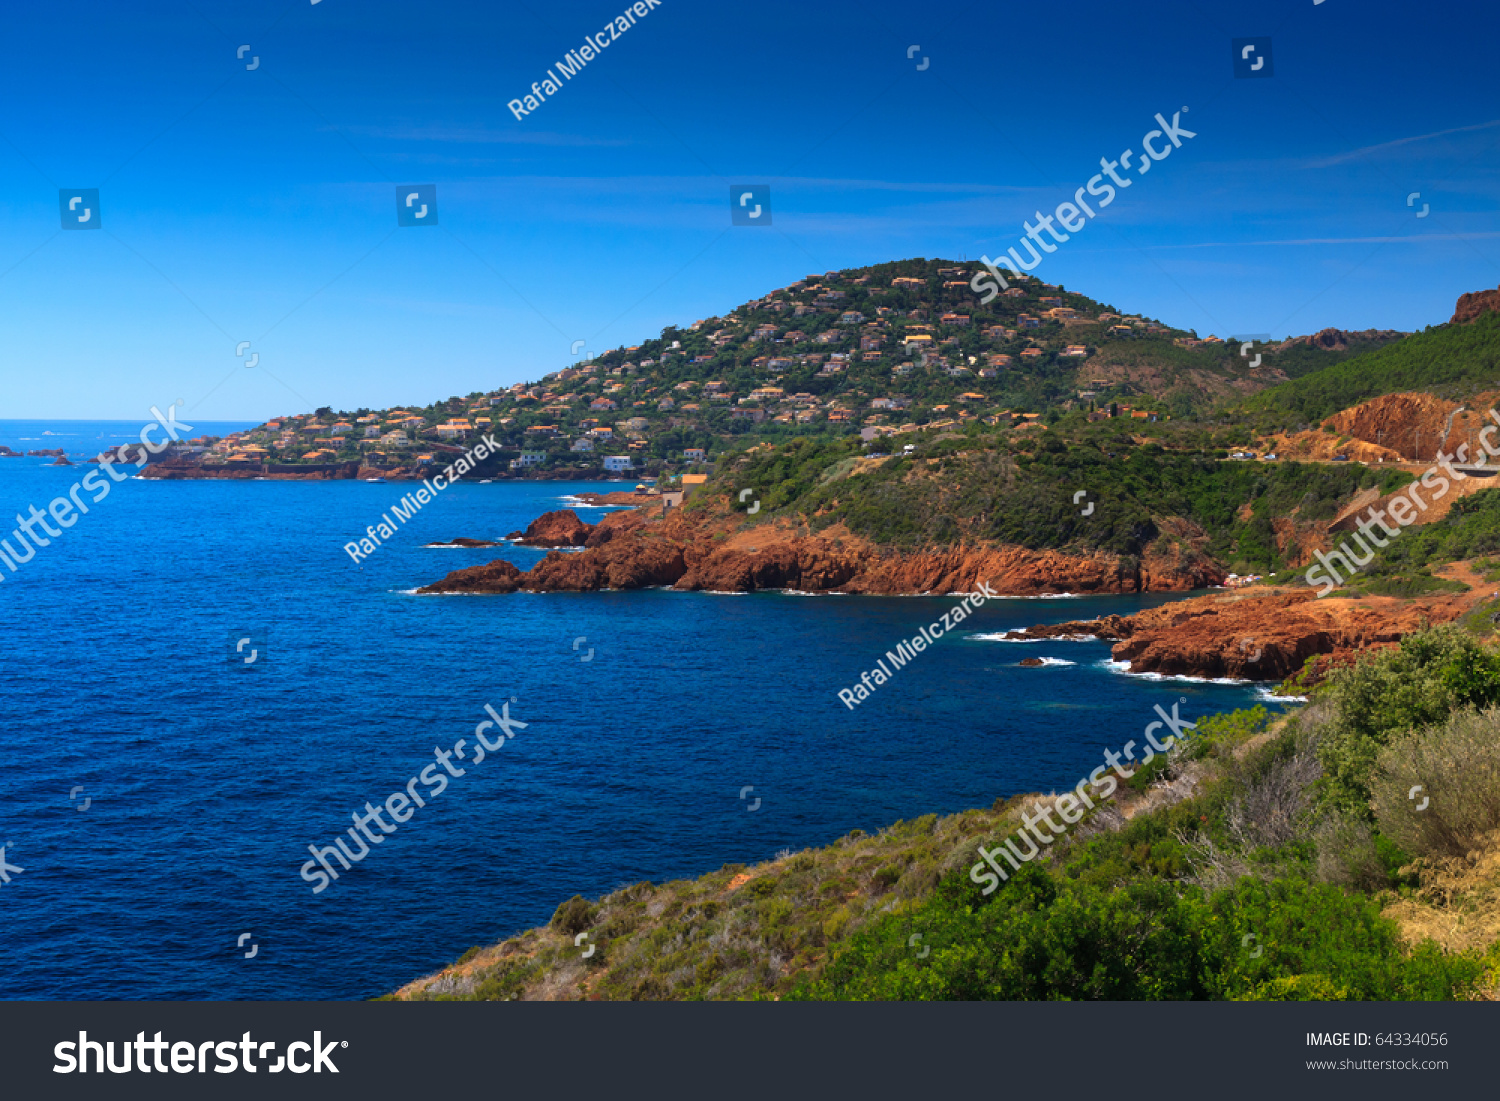 Catboat In A Small Bay French Riviera Stock Photo